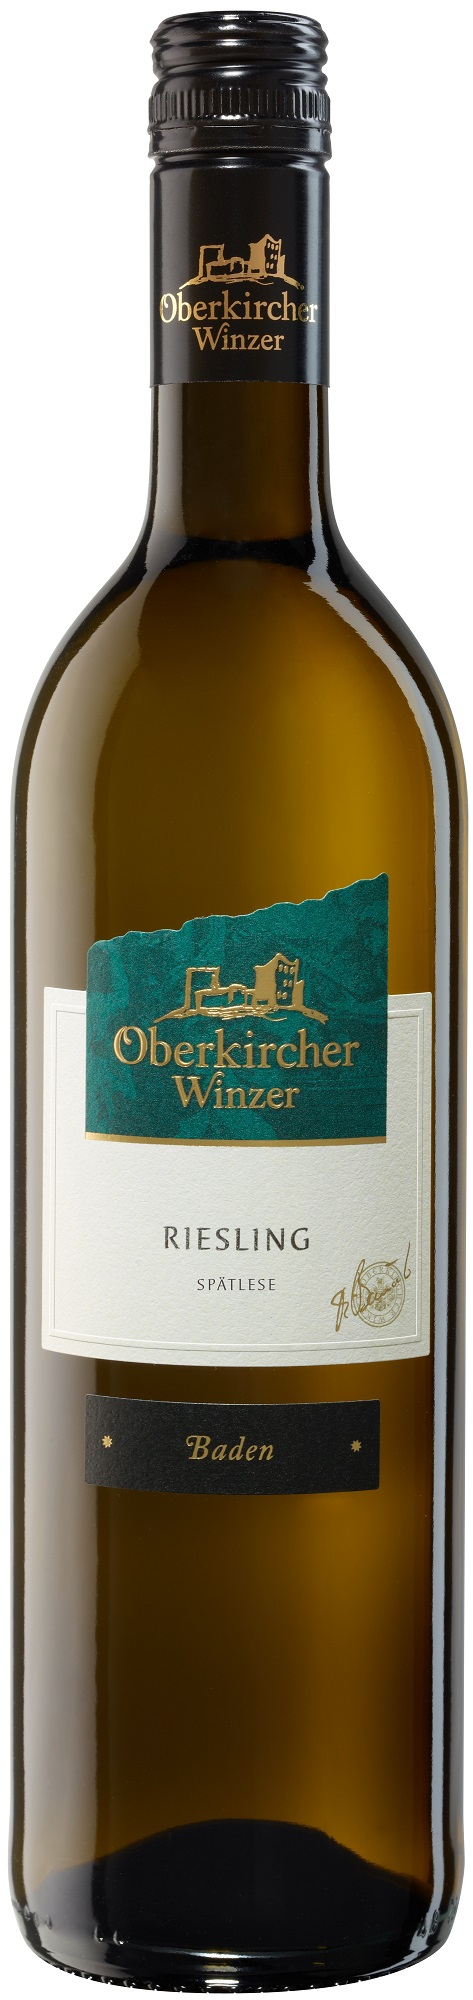 Collection Oberkirch, Riesling Spätlese